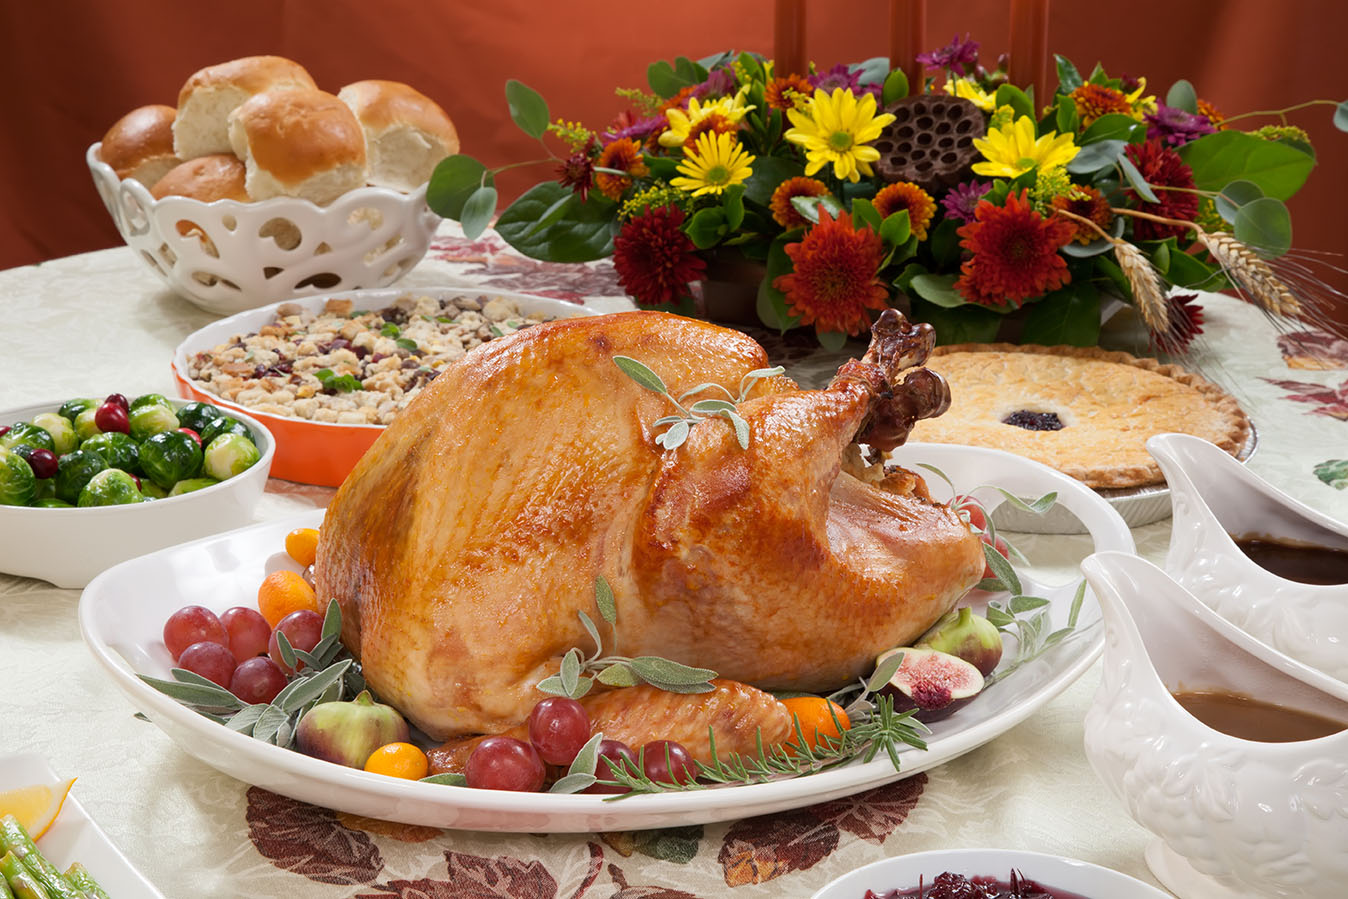 thanksgiving turkey on table with sides